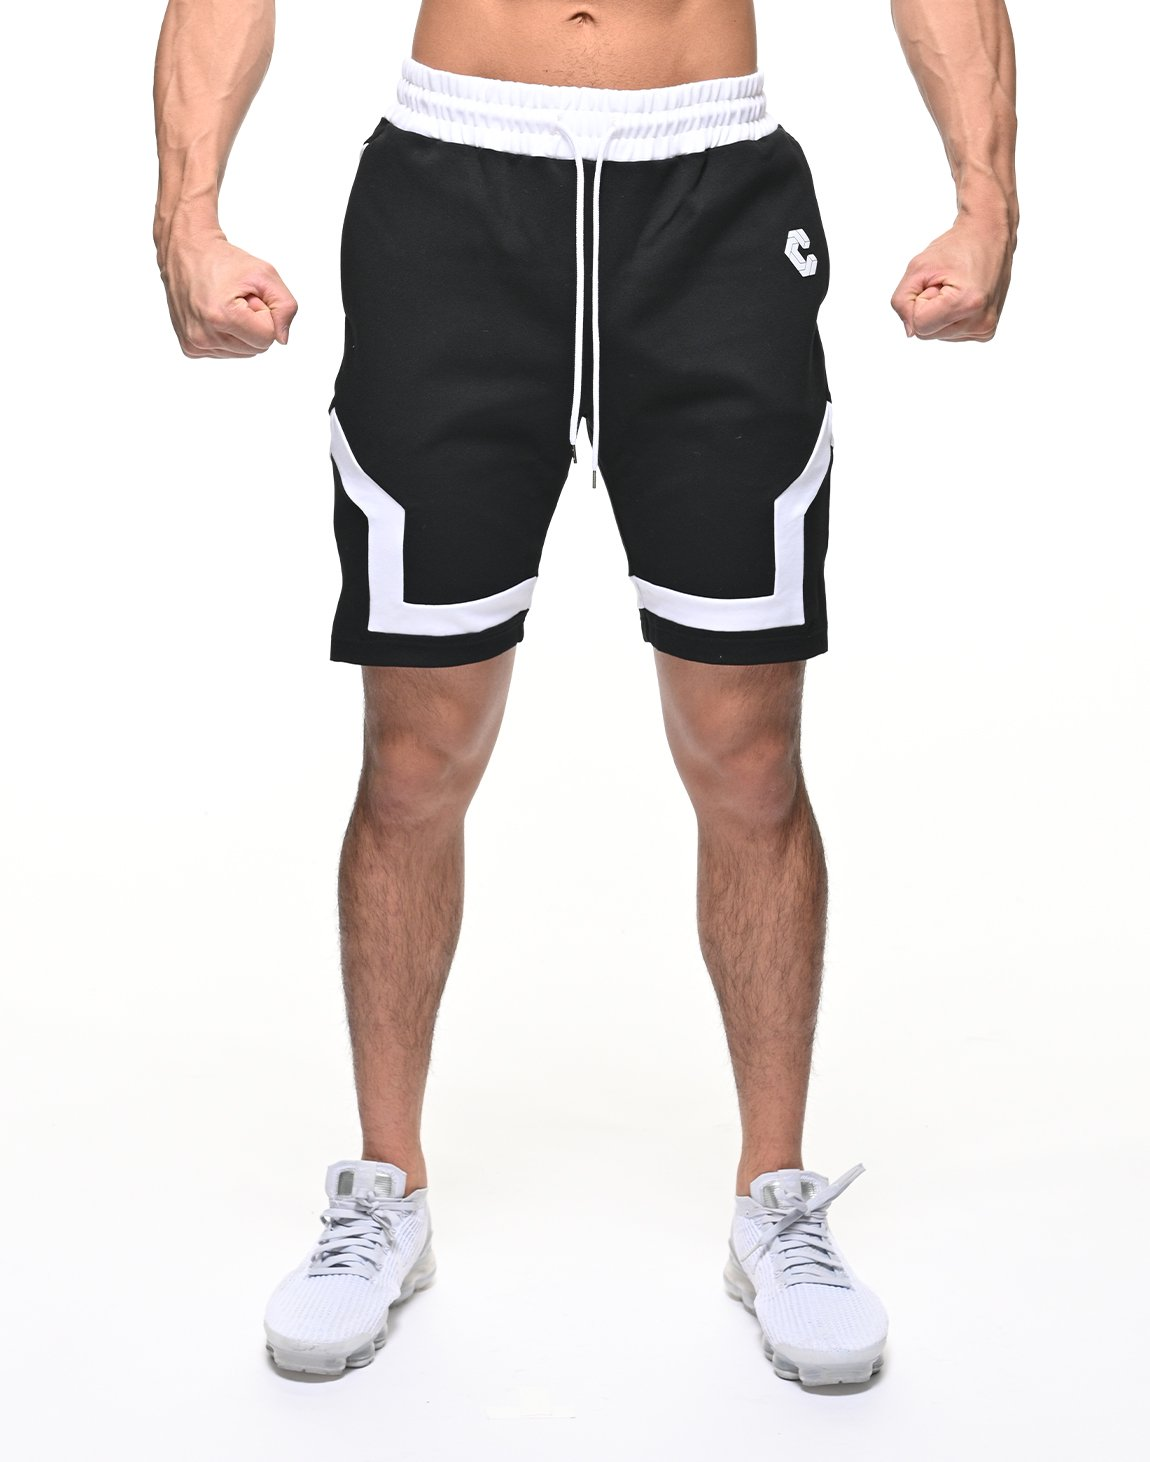 <img class='new_mark_img1' src='https://img.shop-pro.jp/img/new/icons1.gif' style='border:none;display:inline;margin:0px;padding:0px;width:auto;' />CRONOS BACK LOGO SHORTS【BLACK】